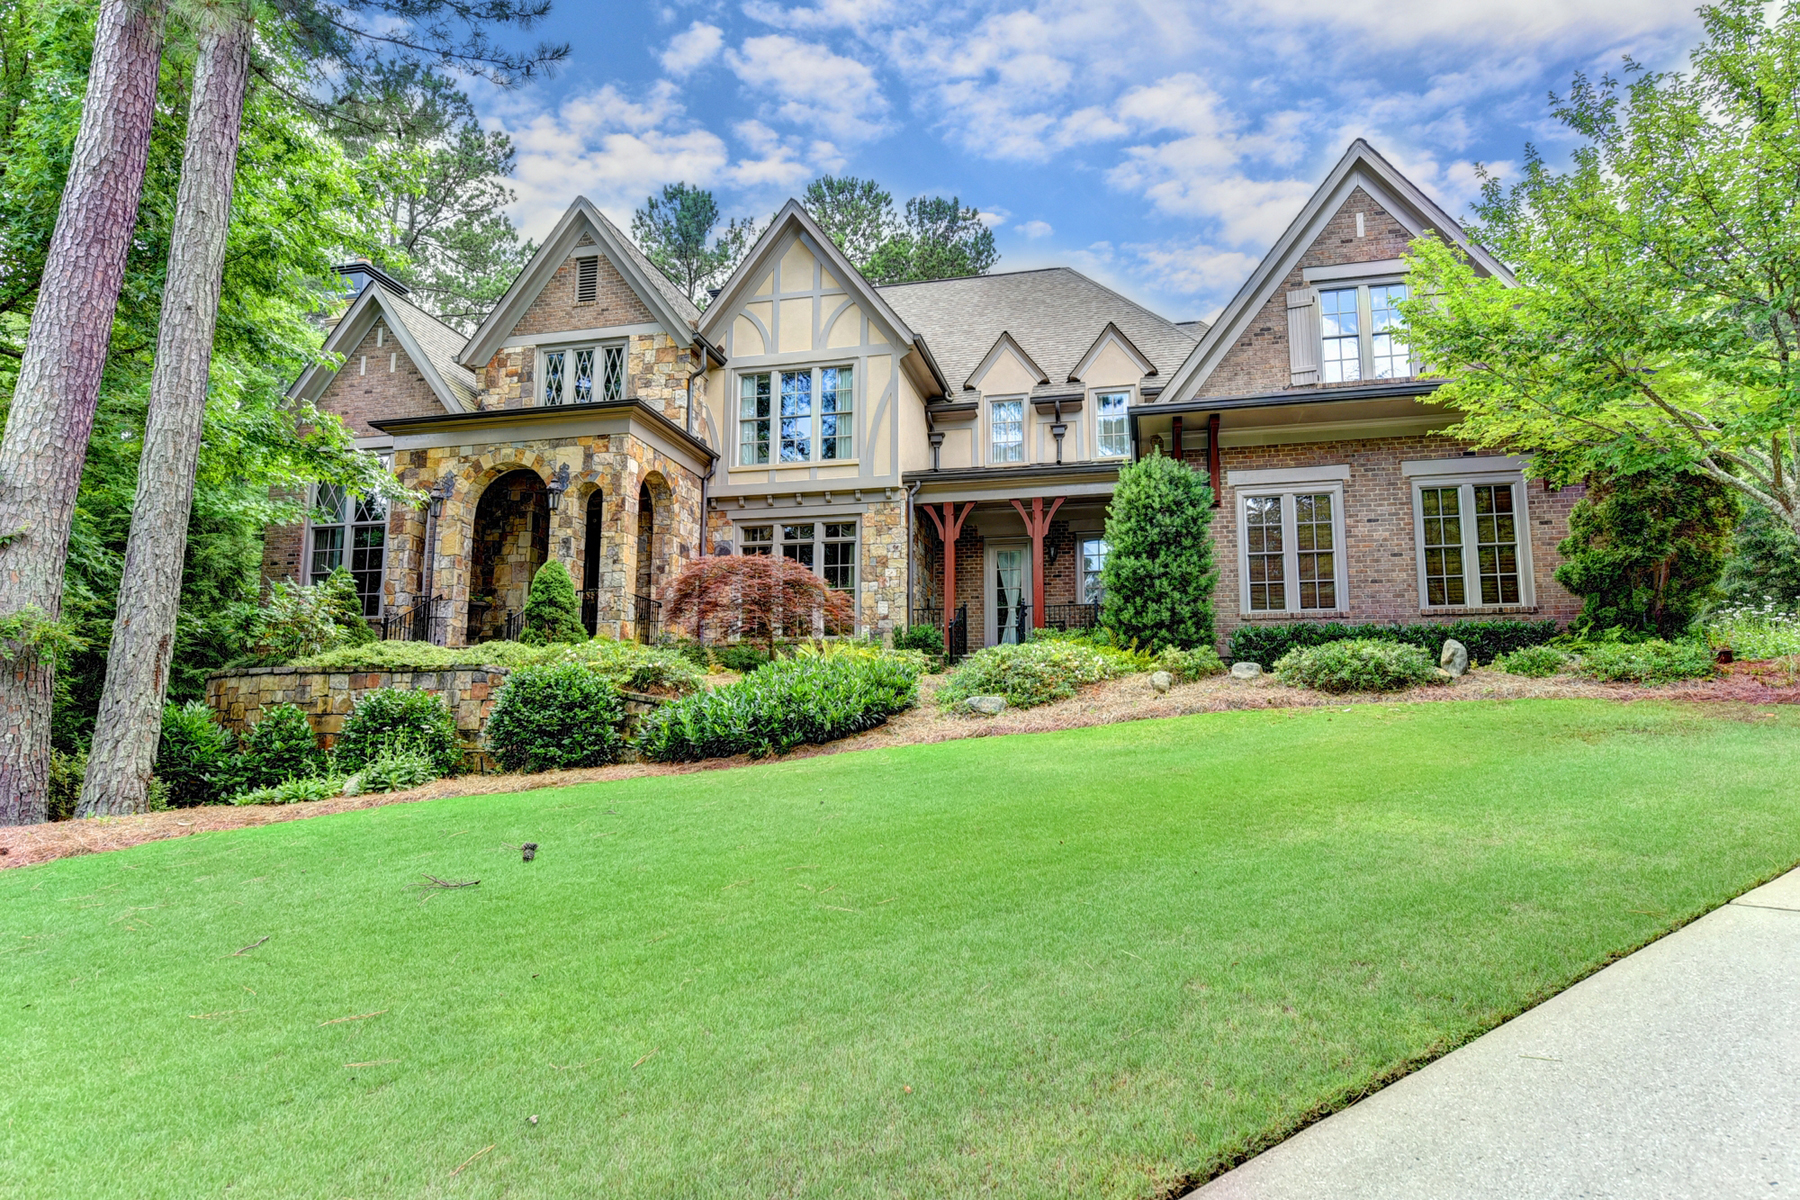 Single Family Homes のために 売買 アット Tudor Inspired European Estate Home 807 Blackfoot Trail, Suwanee, ジョージア 30024 アメリカ